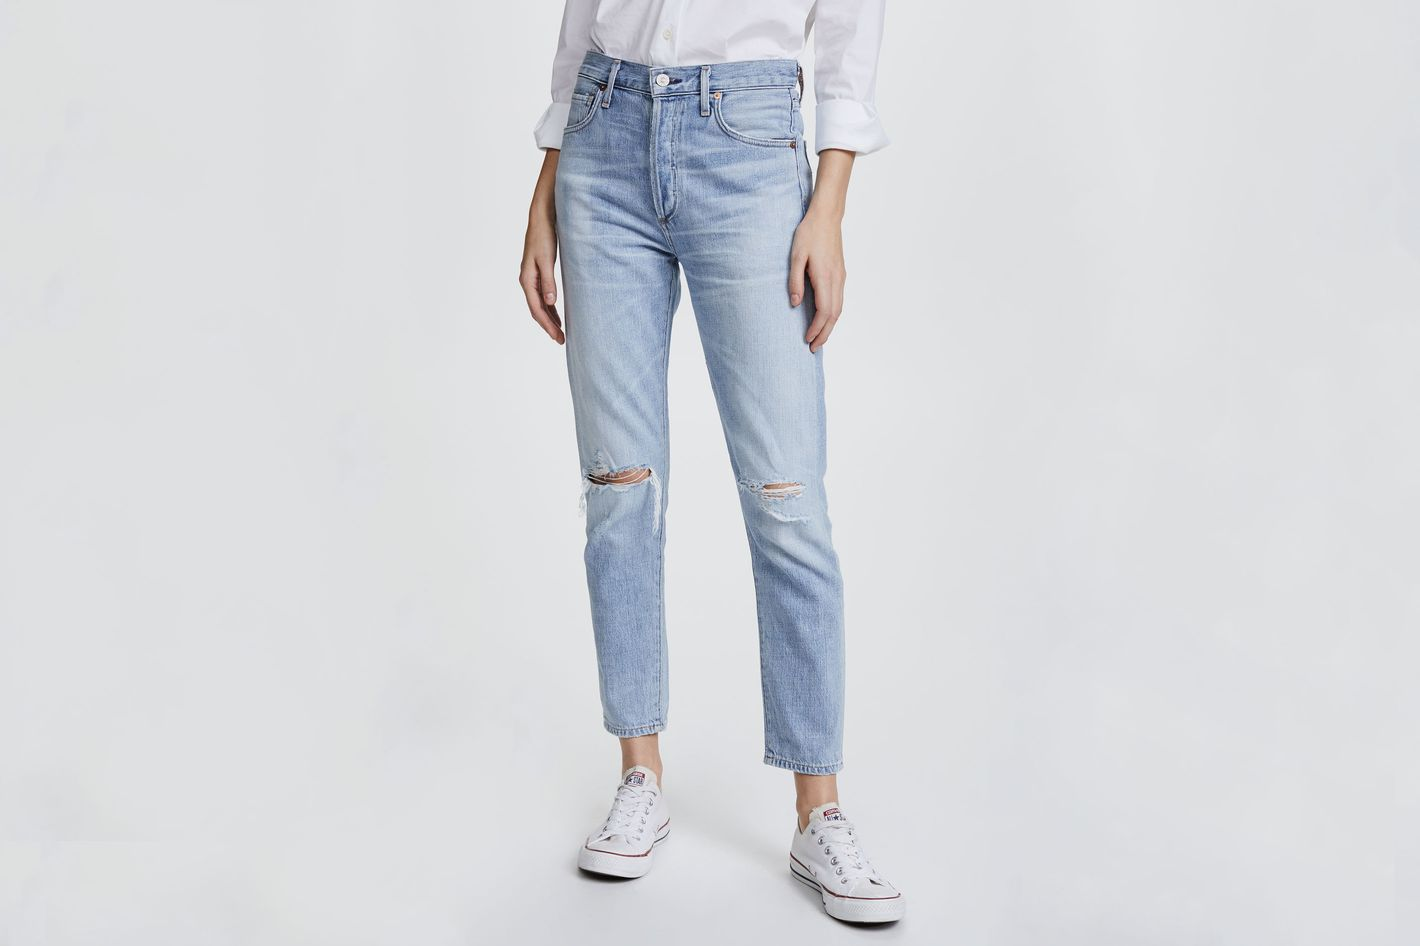 ae902e6a Citizens of Humanity Liya High Rise Classic Fit Jeans